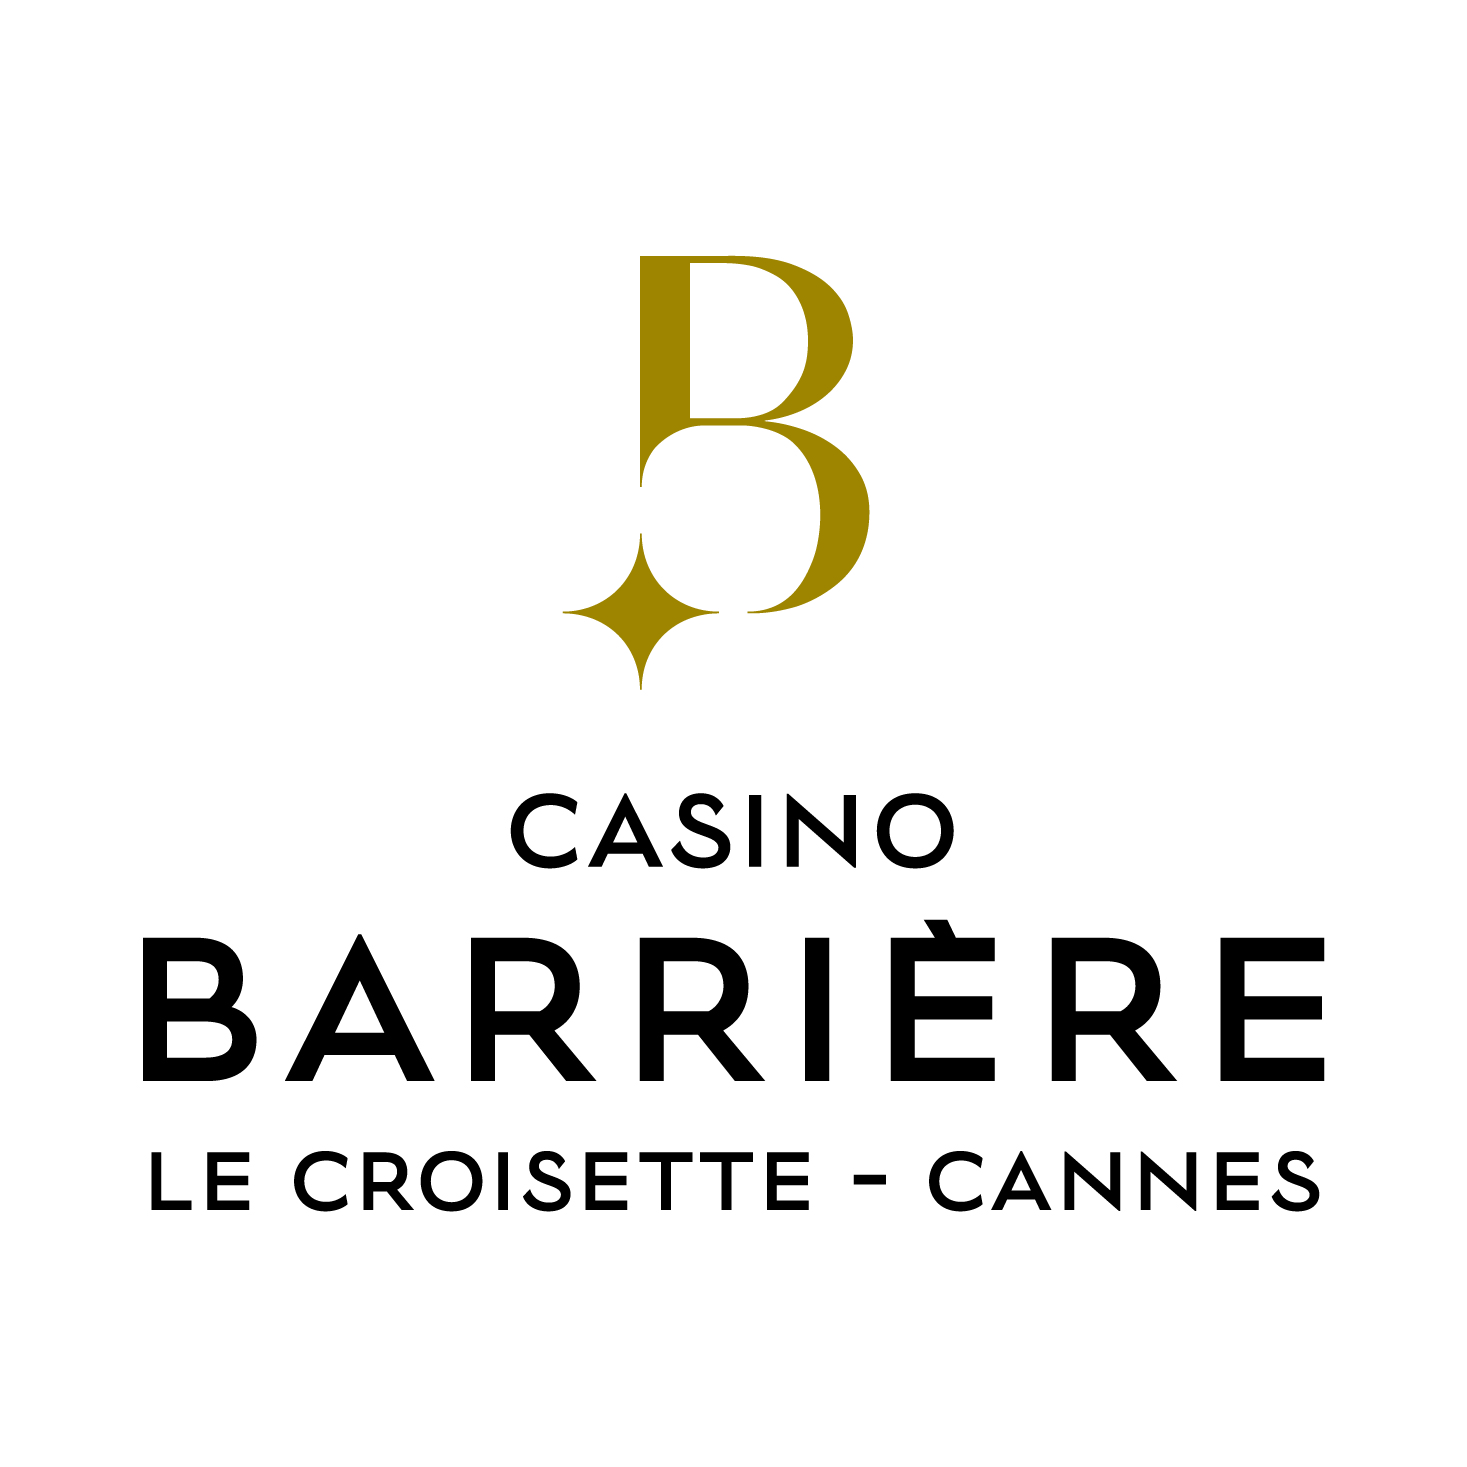 casino barriere